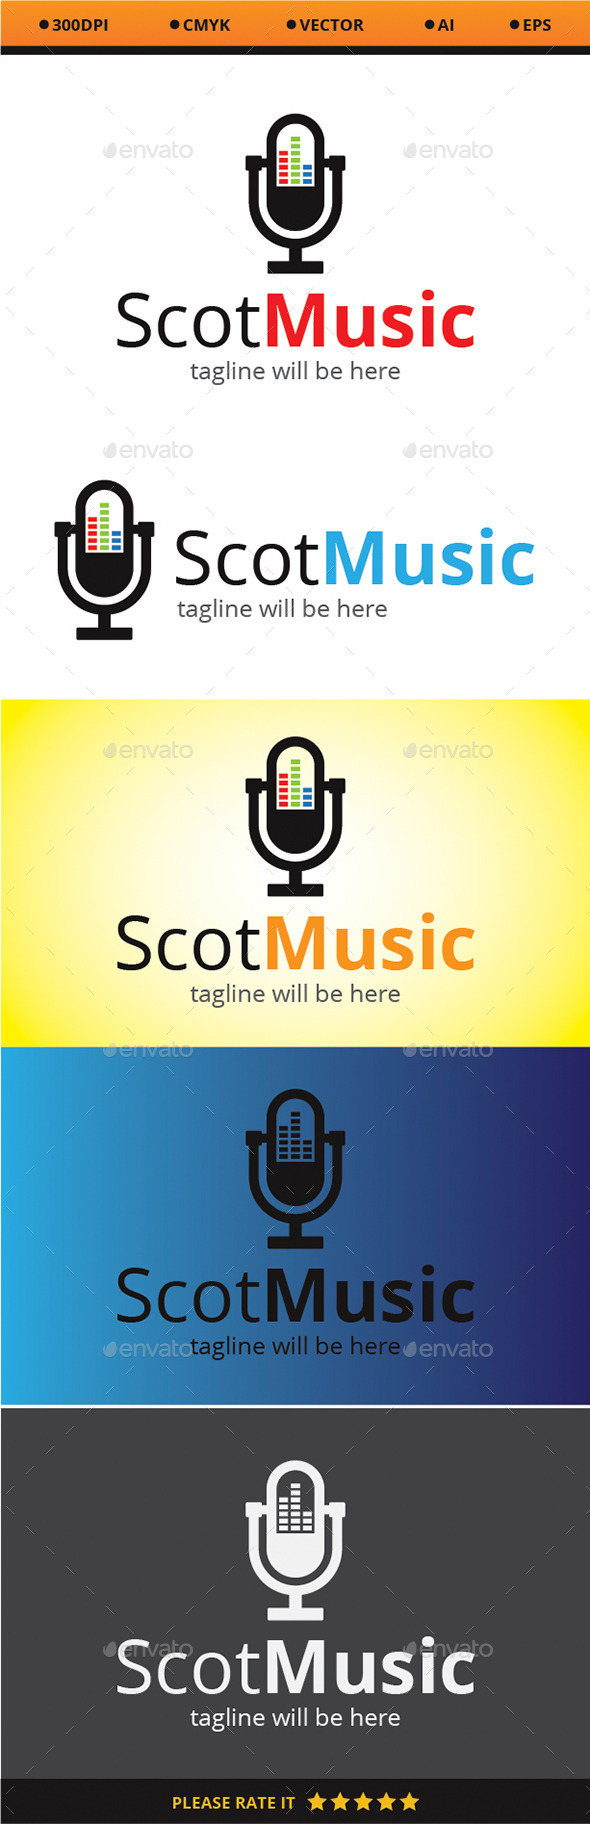 GraphicRiver Scot Music 9351739